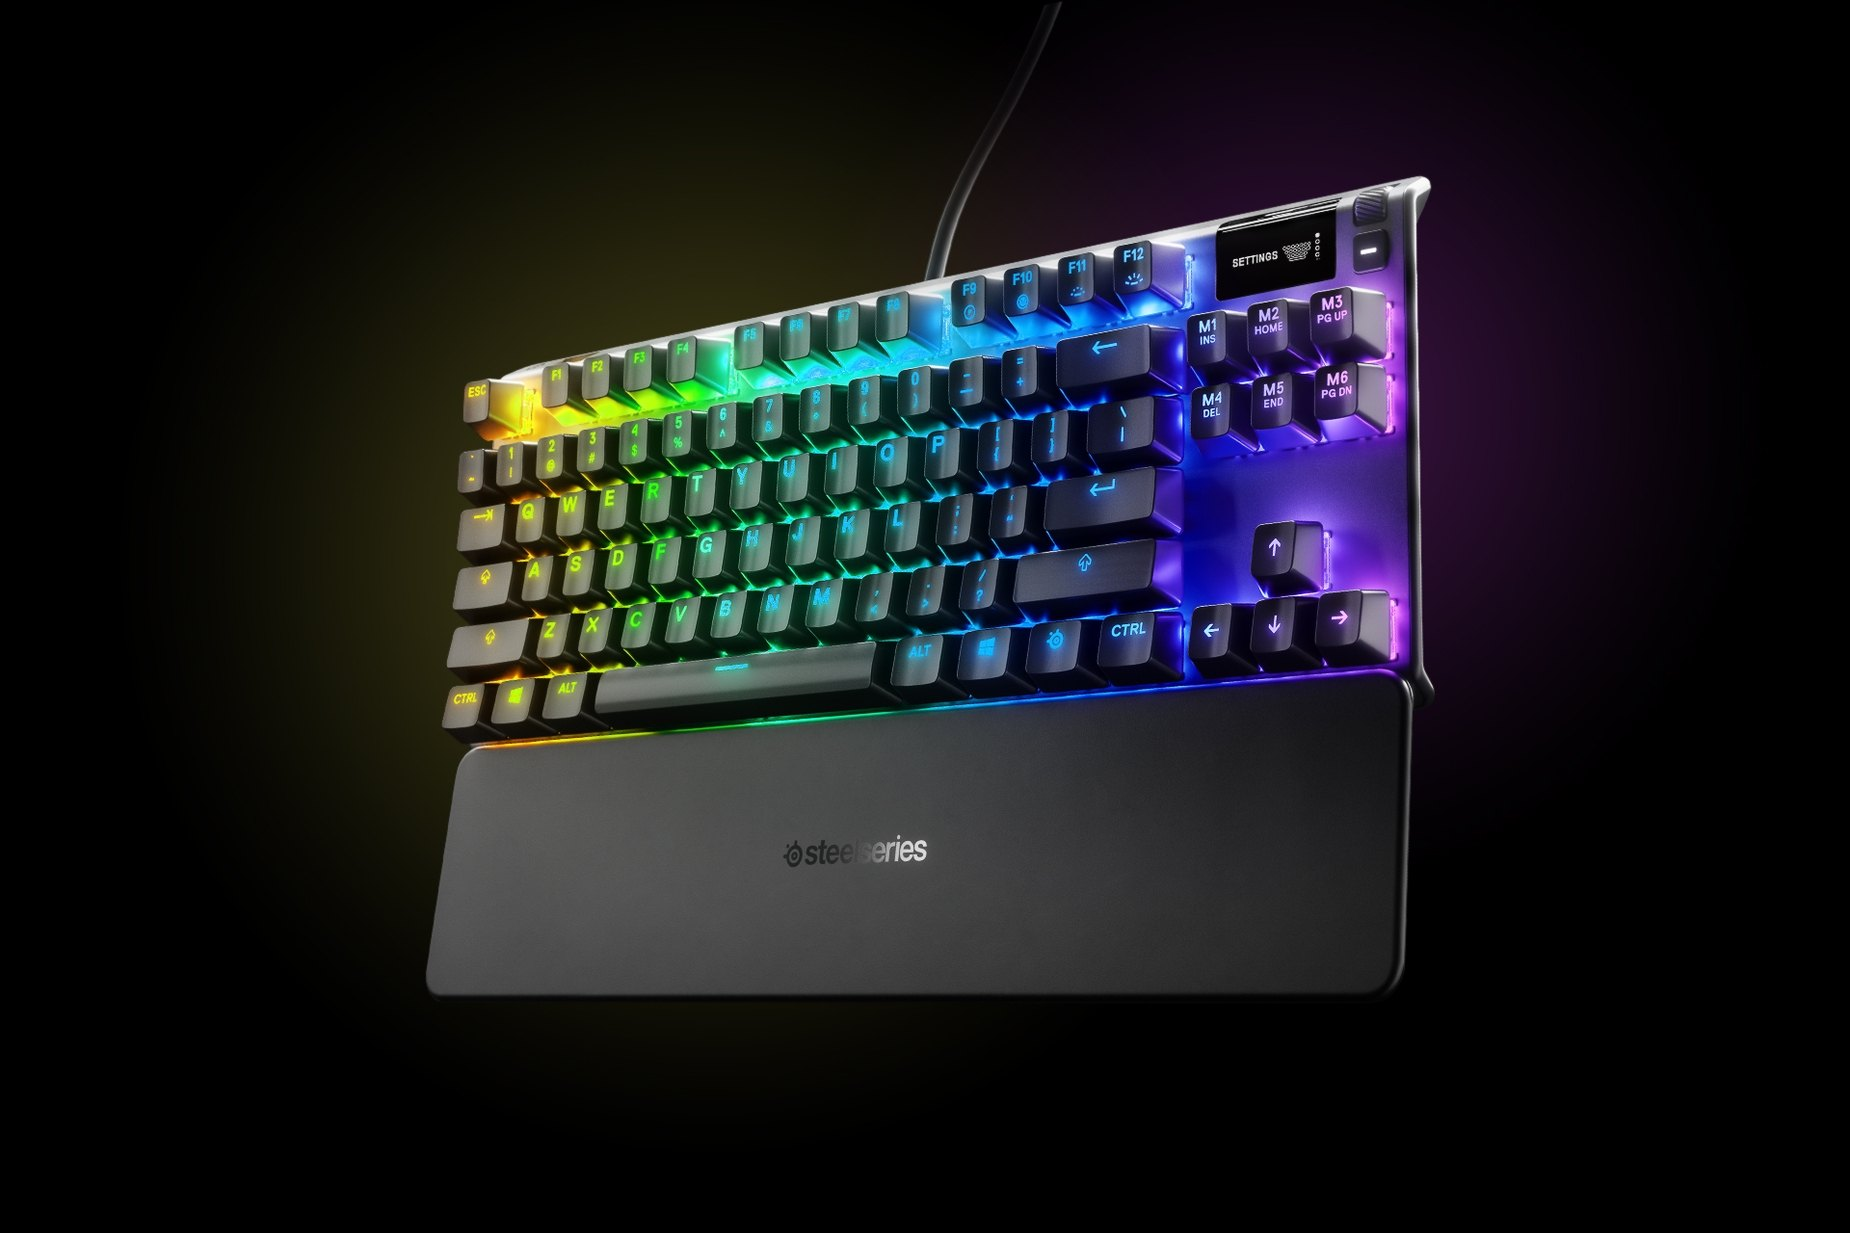 US English - Apex 7 TKL (Kırmızı Anahtar) gaming keyboard with the illumination lit up on dark background, also shows the OLED screen and controls used to change settings and adjust audio